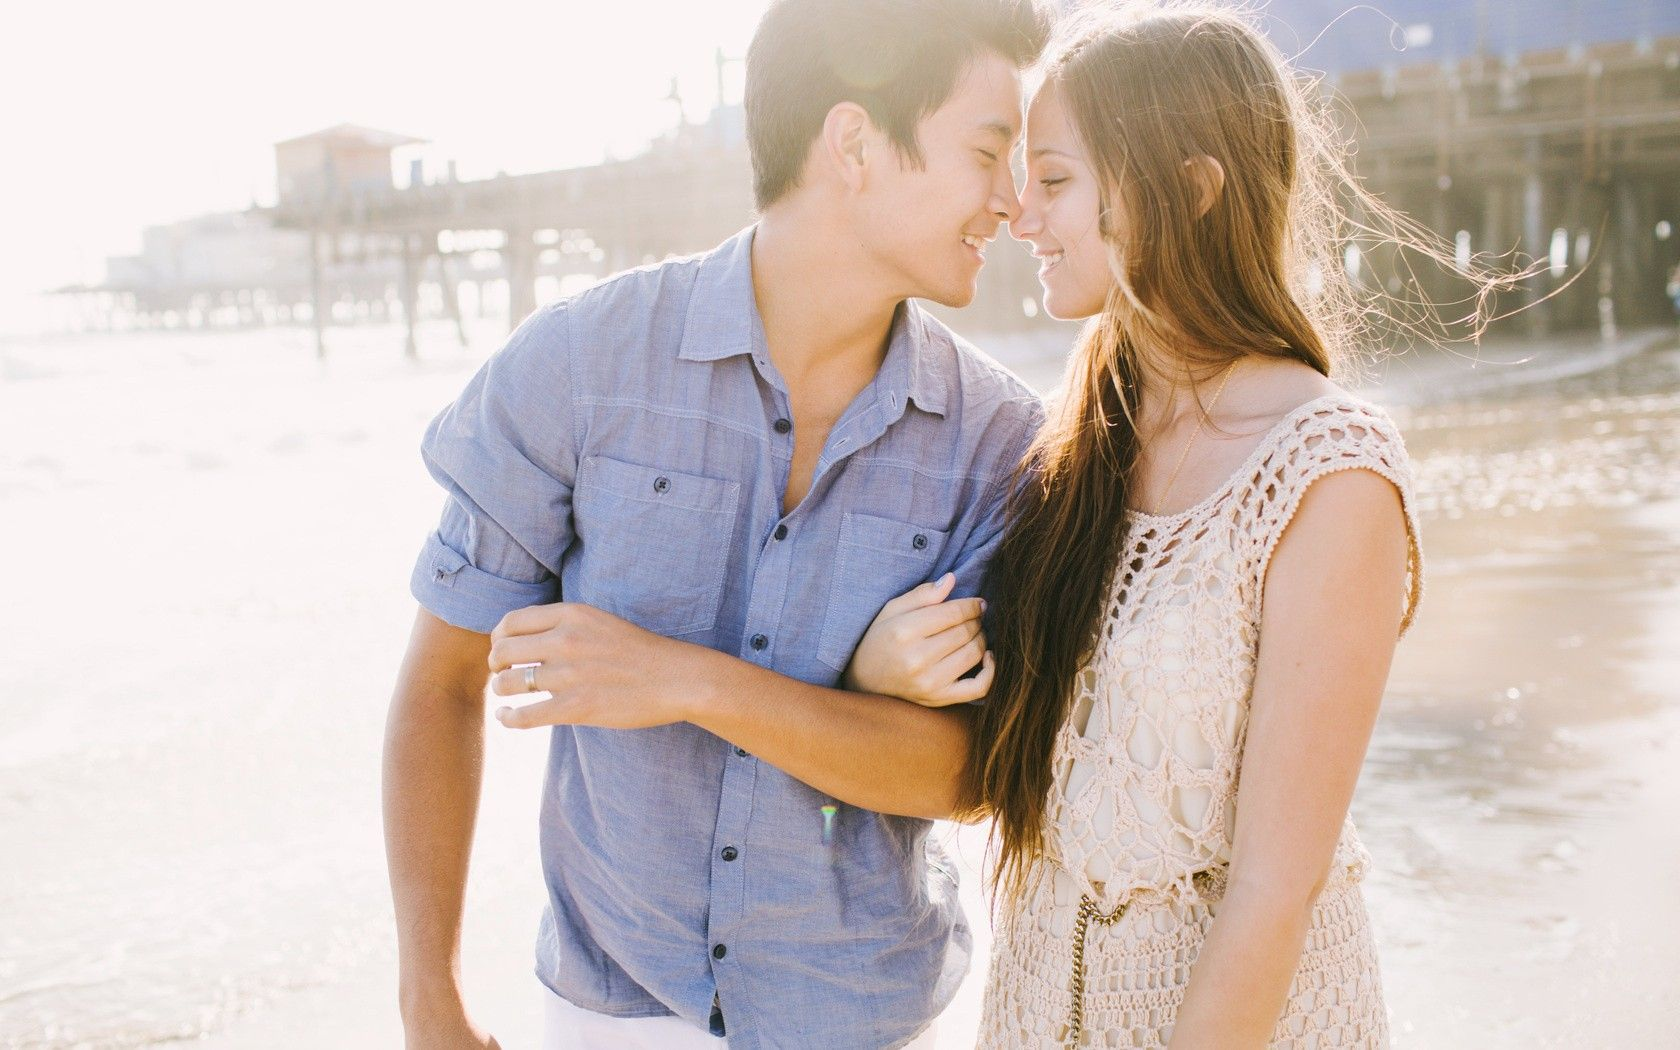 beach couple fresh new hd wallpaper photo shoot ideas pinterest